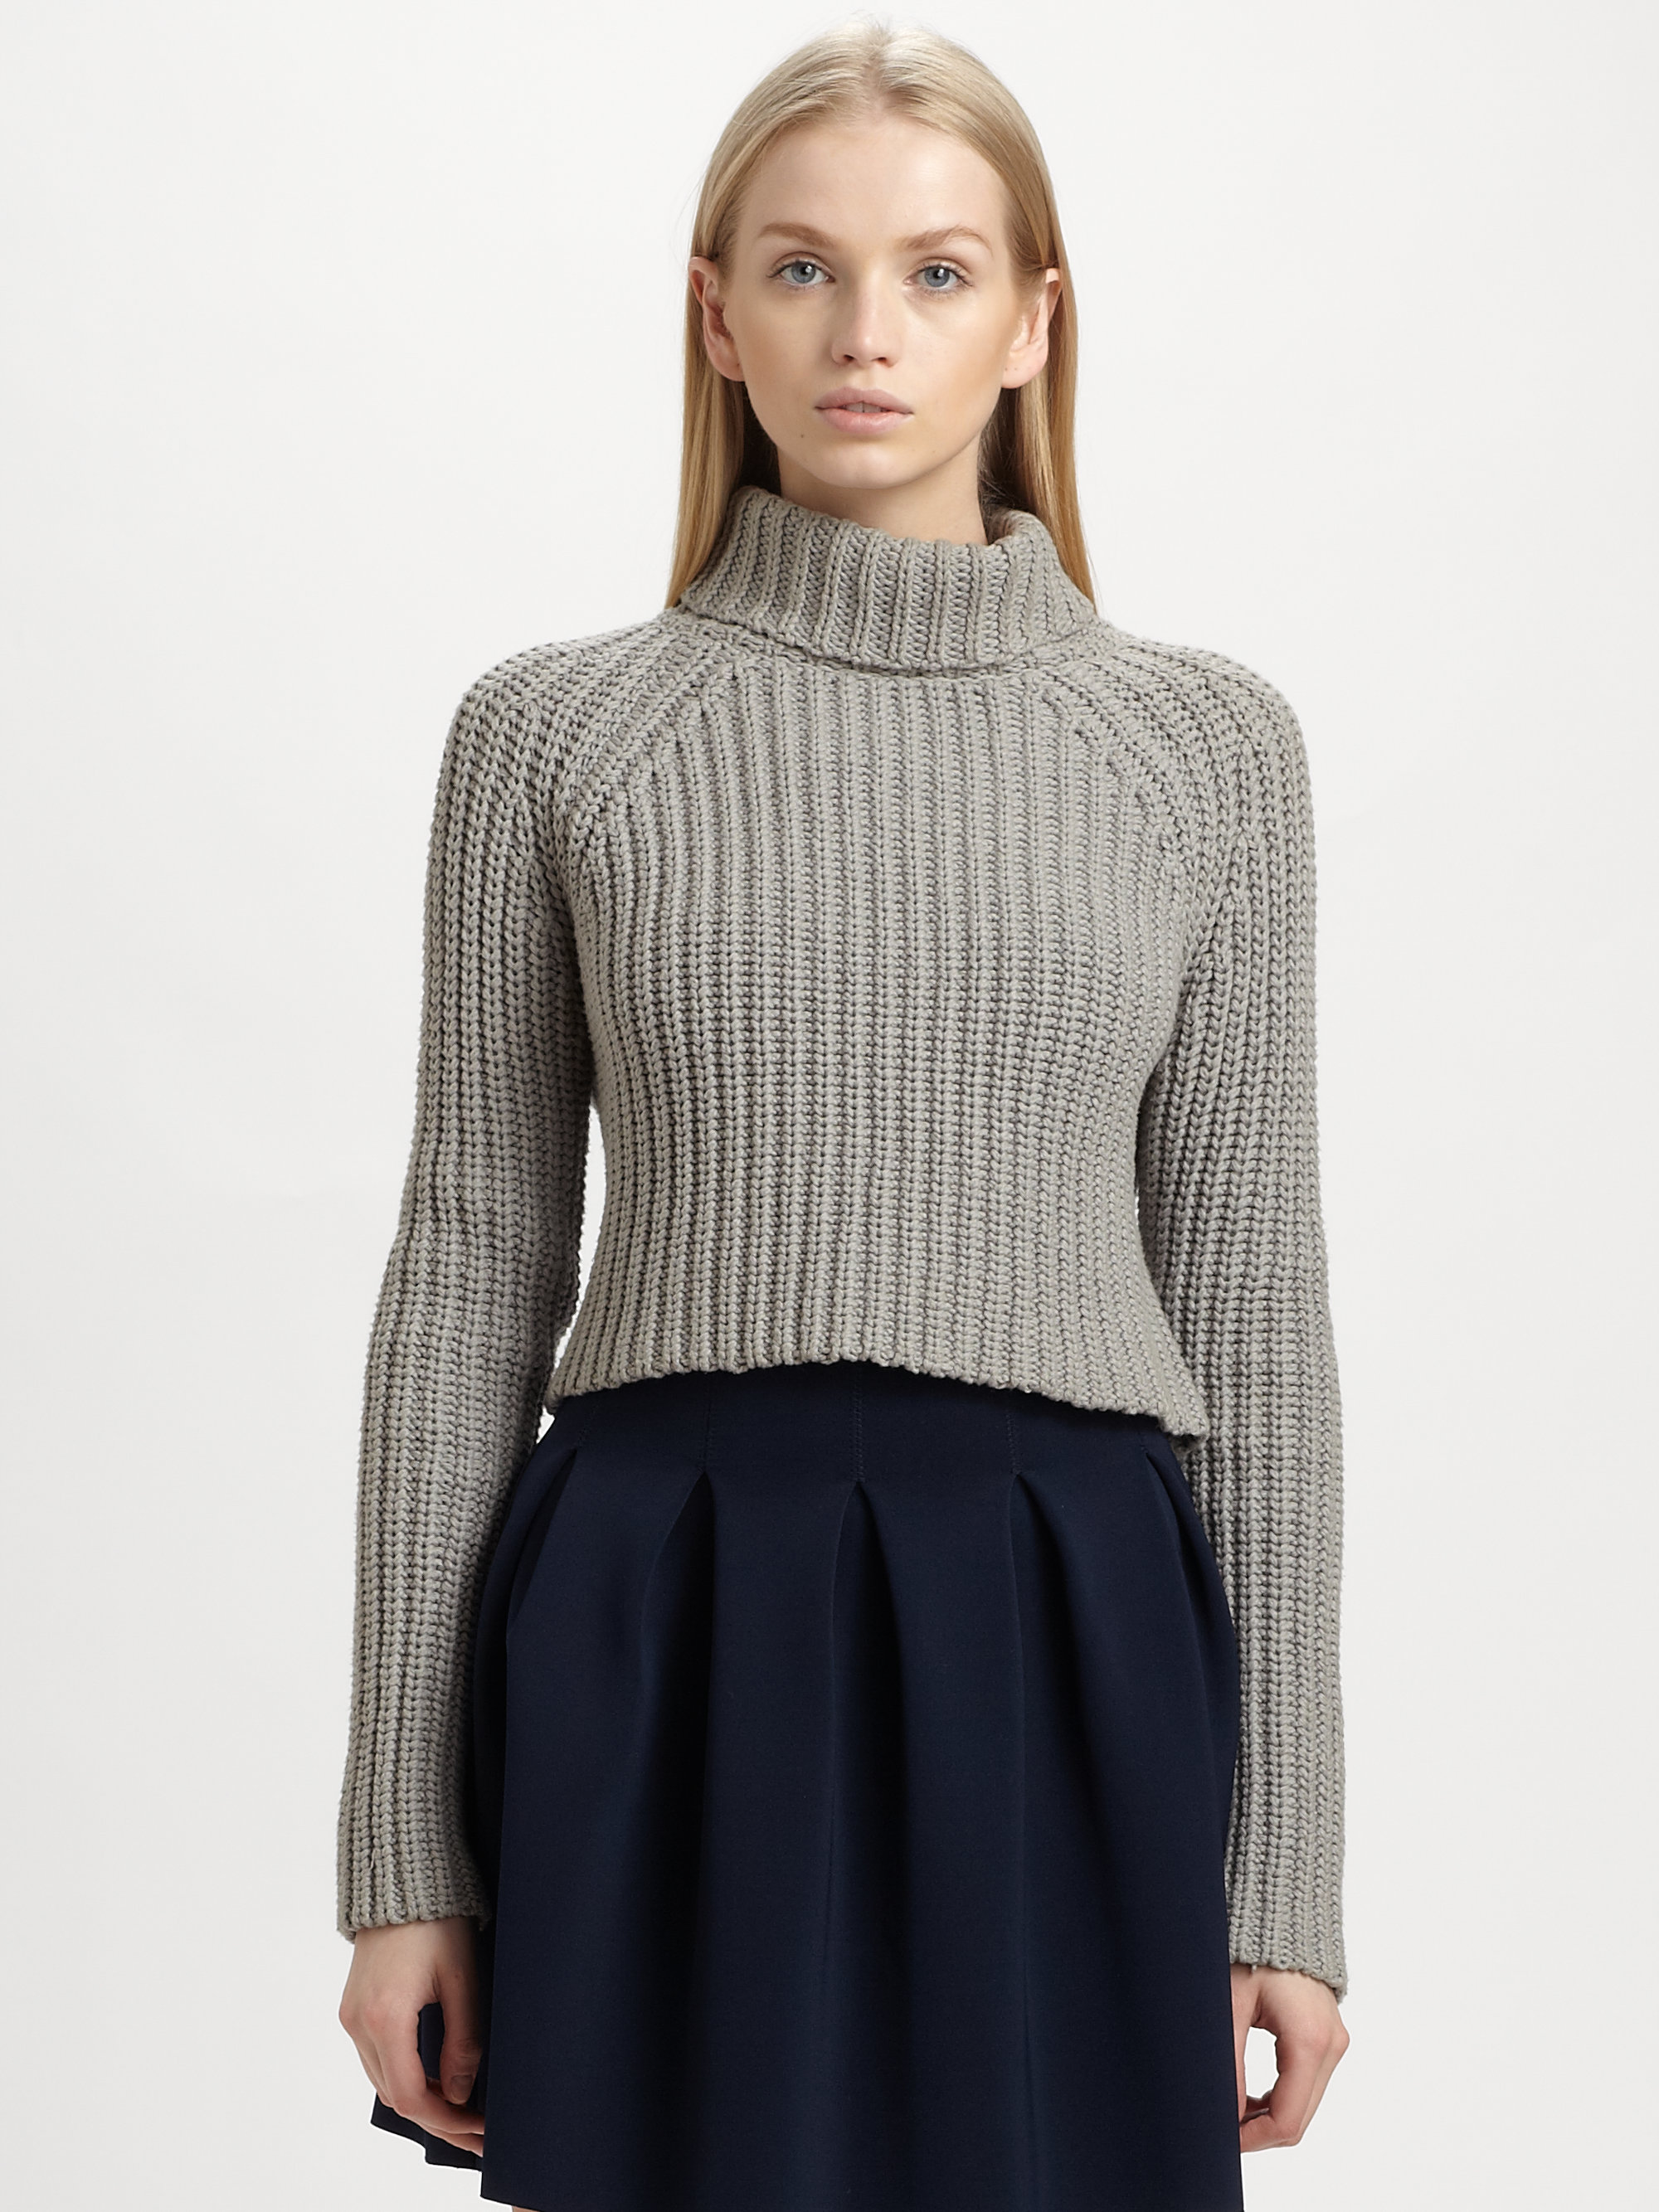 T by alexander wang Cropped Turtleneck Sweater in Gray | Lyst